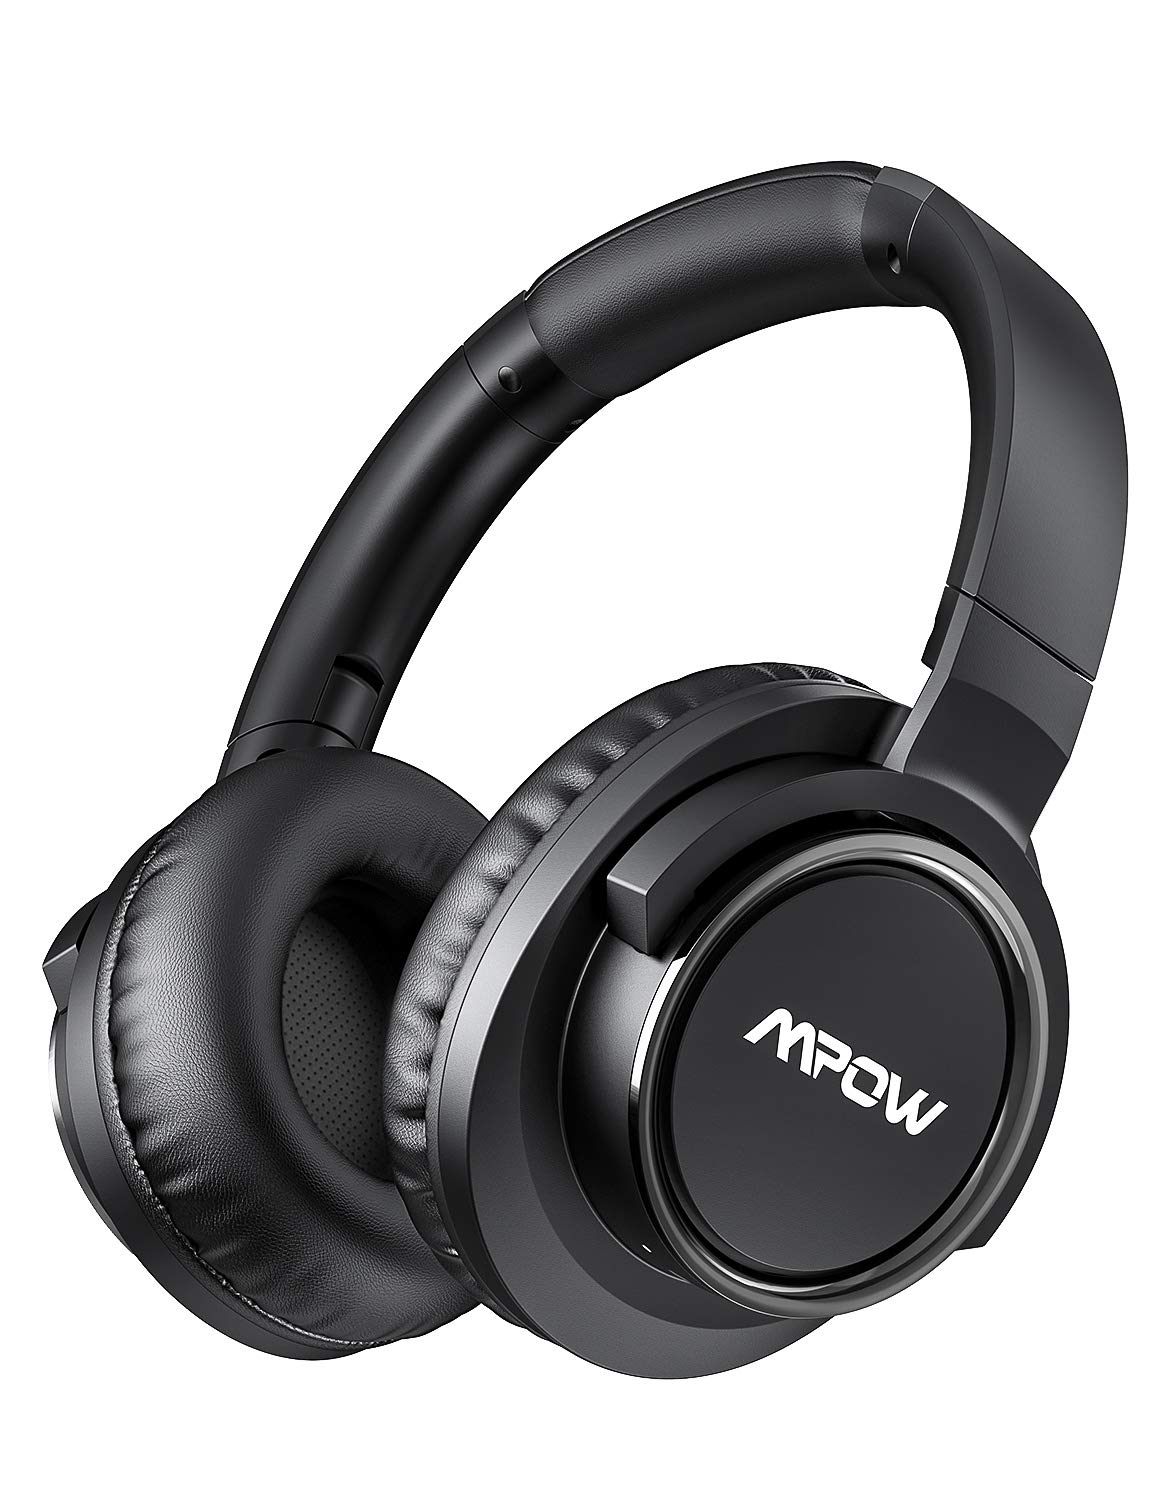 Auriculares Mpow (Series II) Cancelacion de Ruido Activa 50 horas Duracion con Hi-Fi Deep Bass ANC Over-Ear Bluetooth co